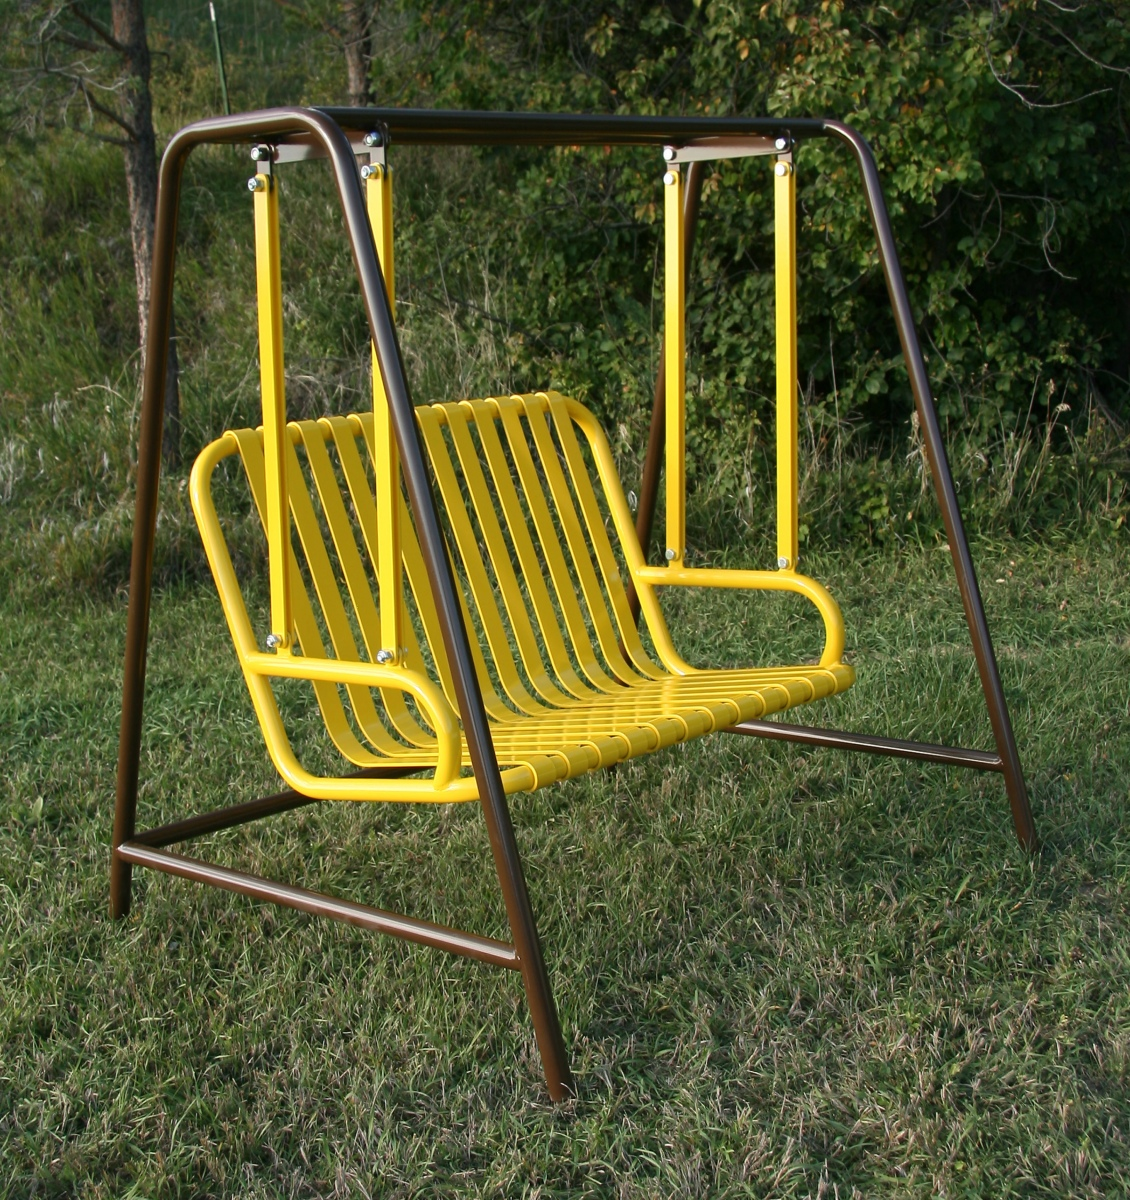 Swinging-bench-brown-yellow